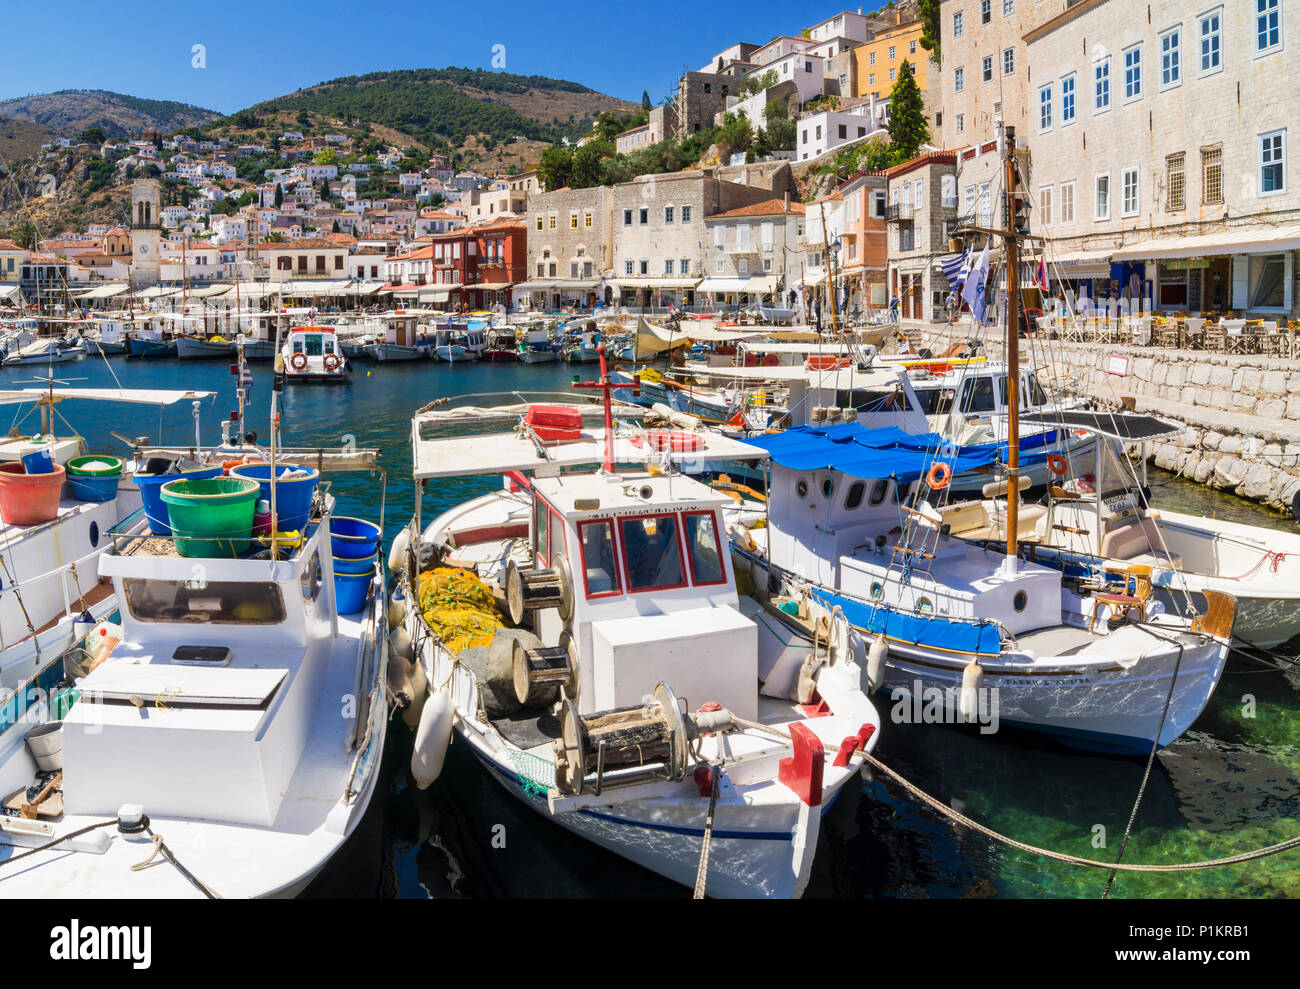 Hydra Town harbour filled with small fishing boats overlooked by the cafe lined waterfront, Hydra Island, Greece - Stock Image